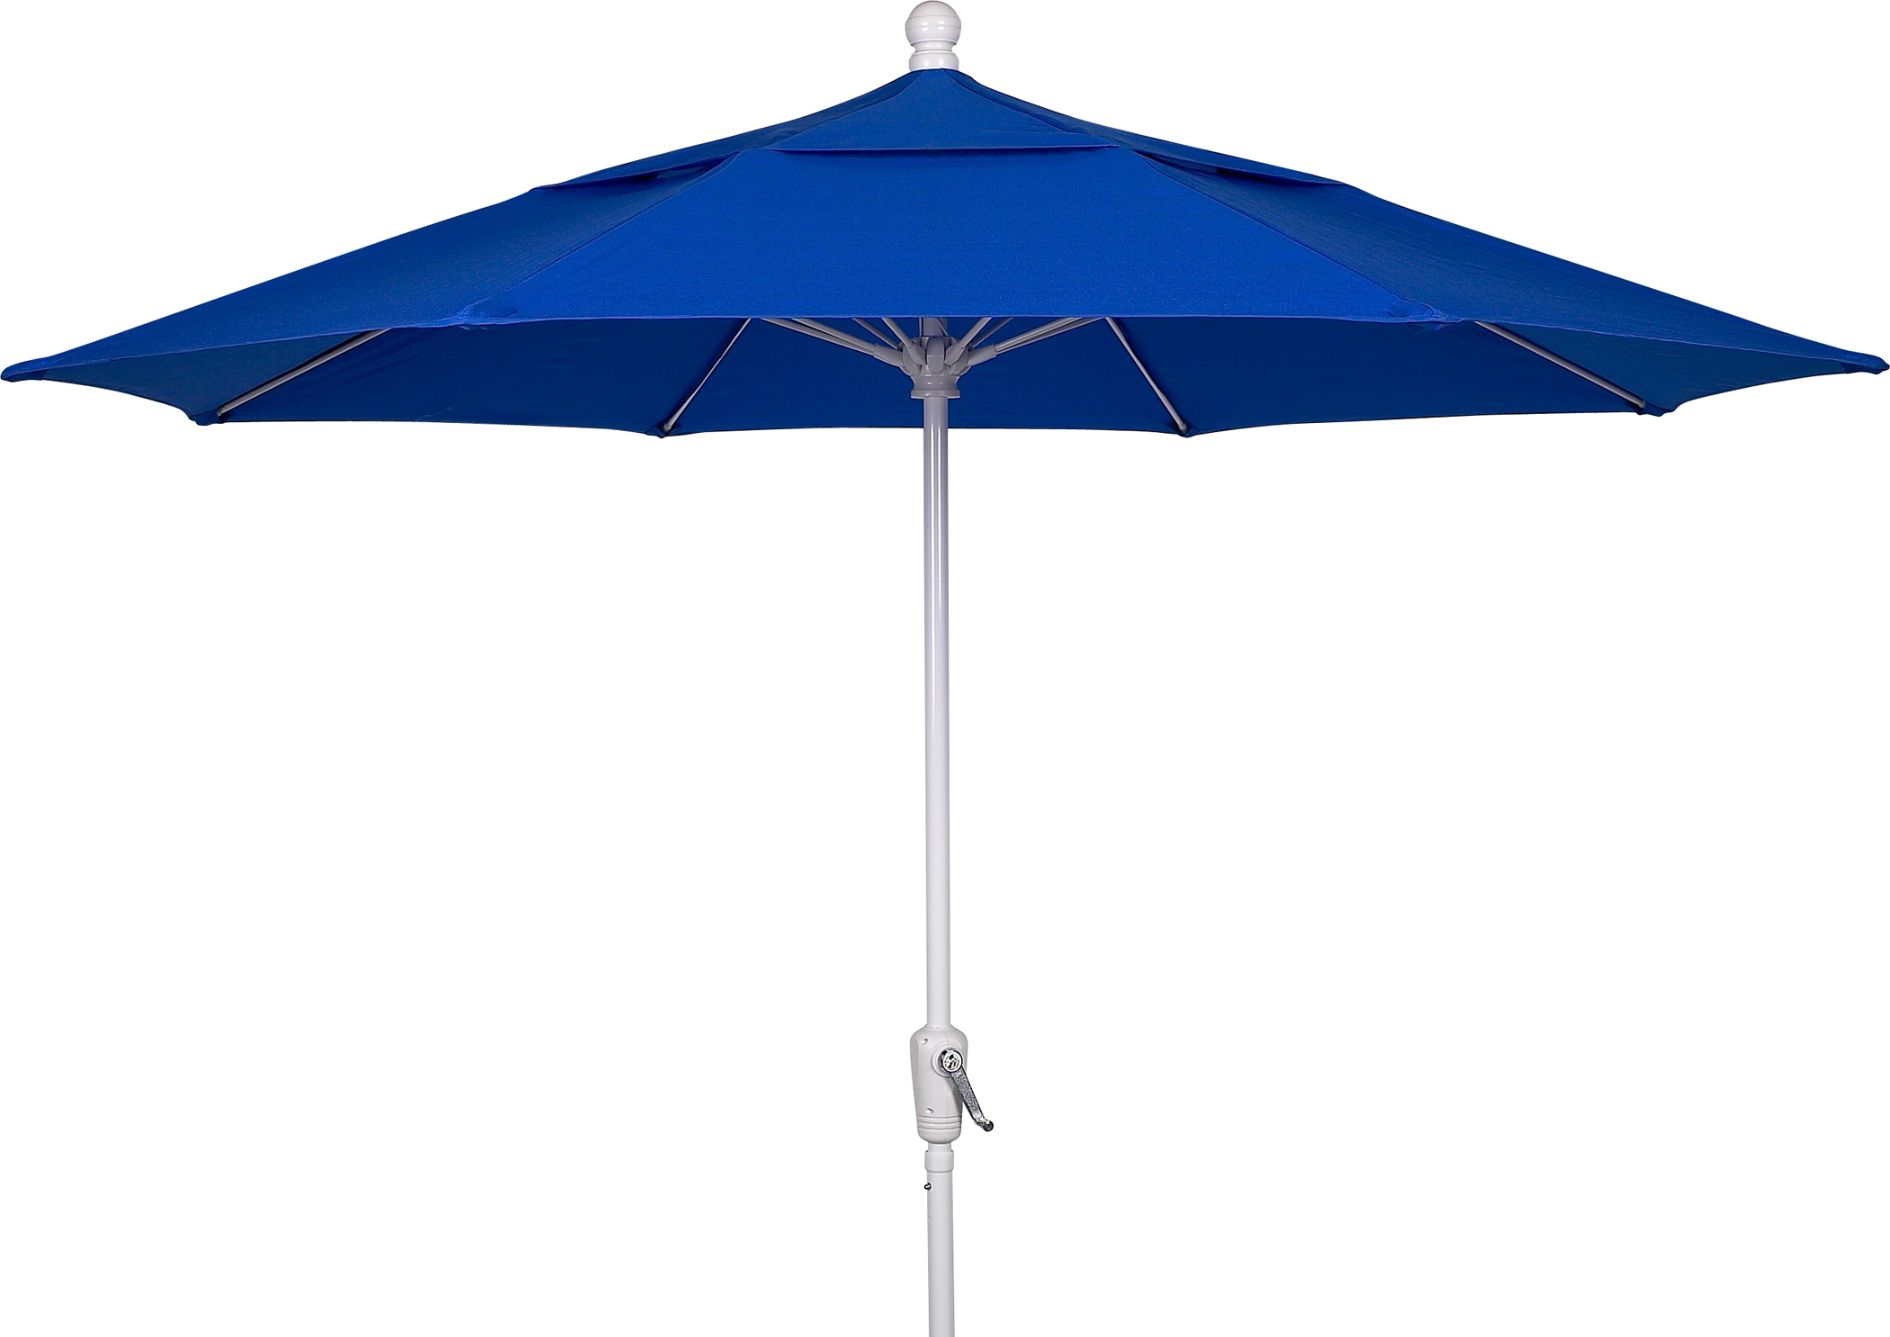 charming cantilever patio umbrella in blue with white metal stand for patio furniture ideas